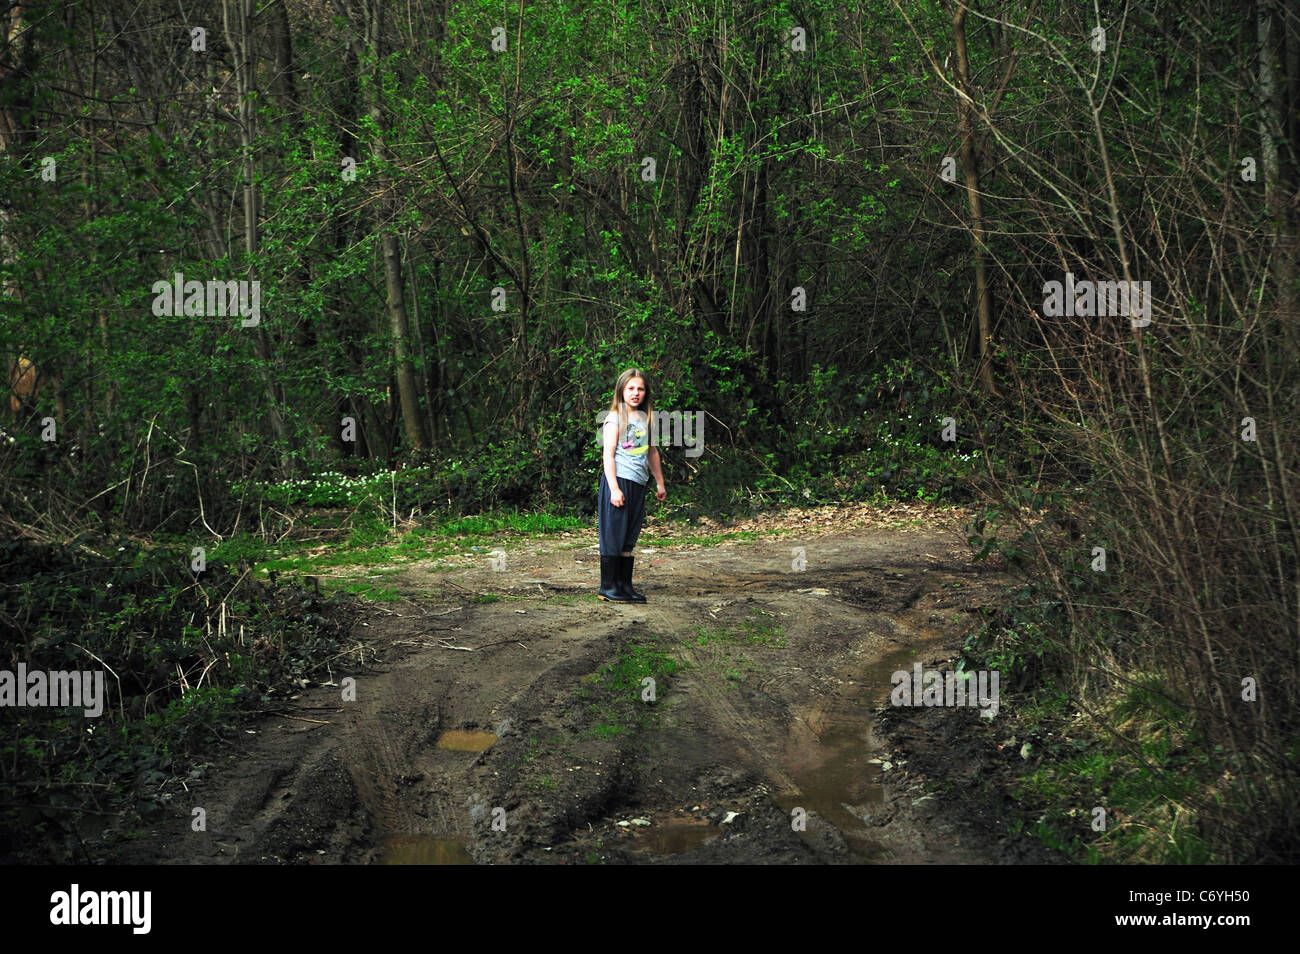 Girl walking on dirt road in forest - Stock Image